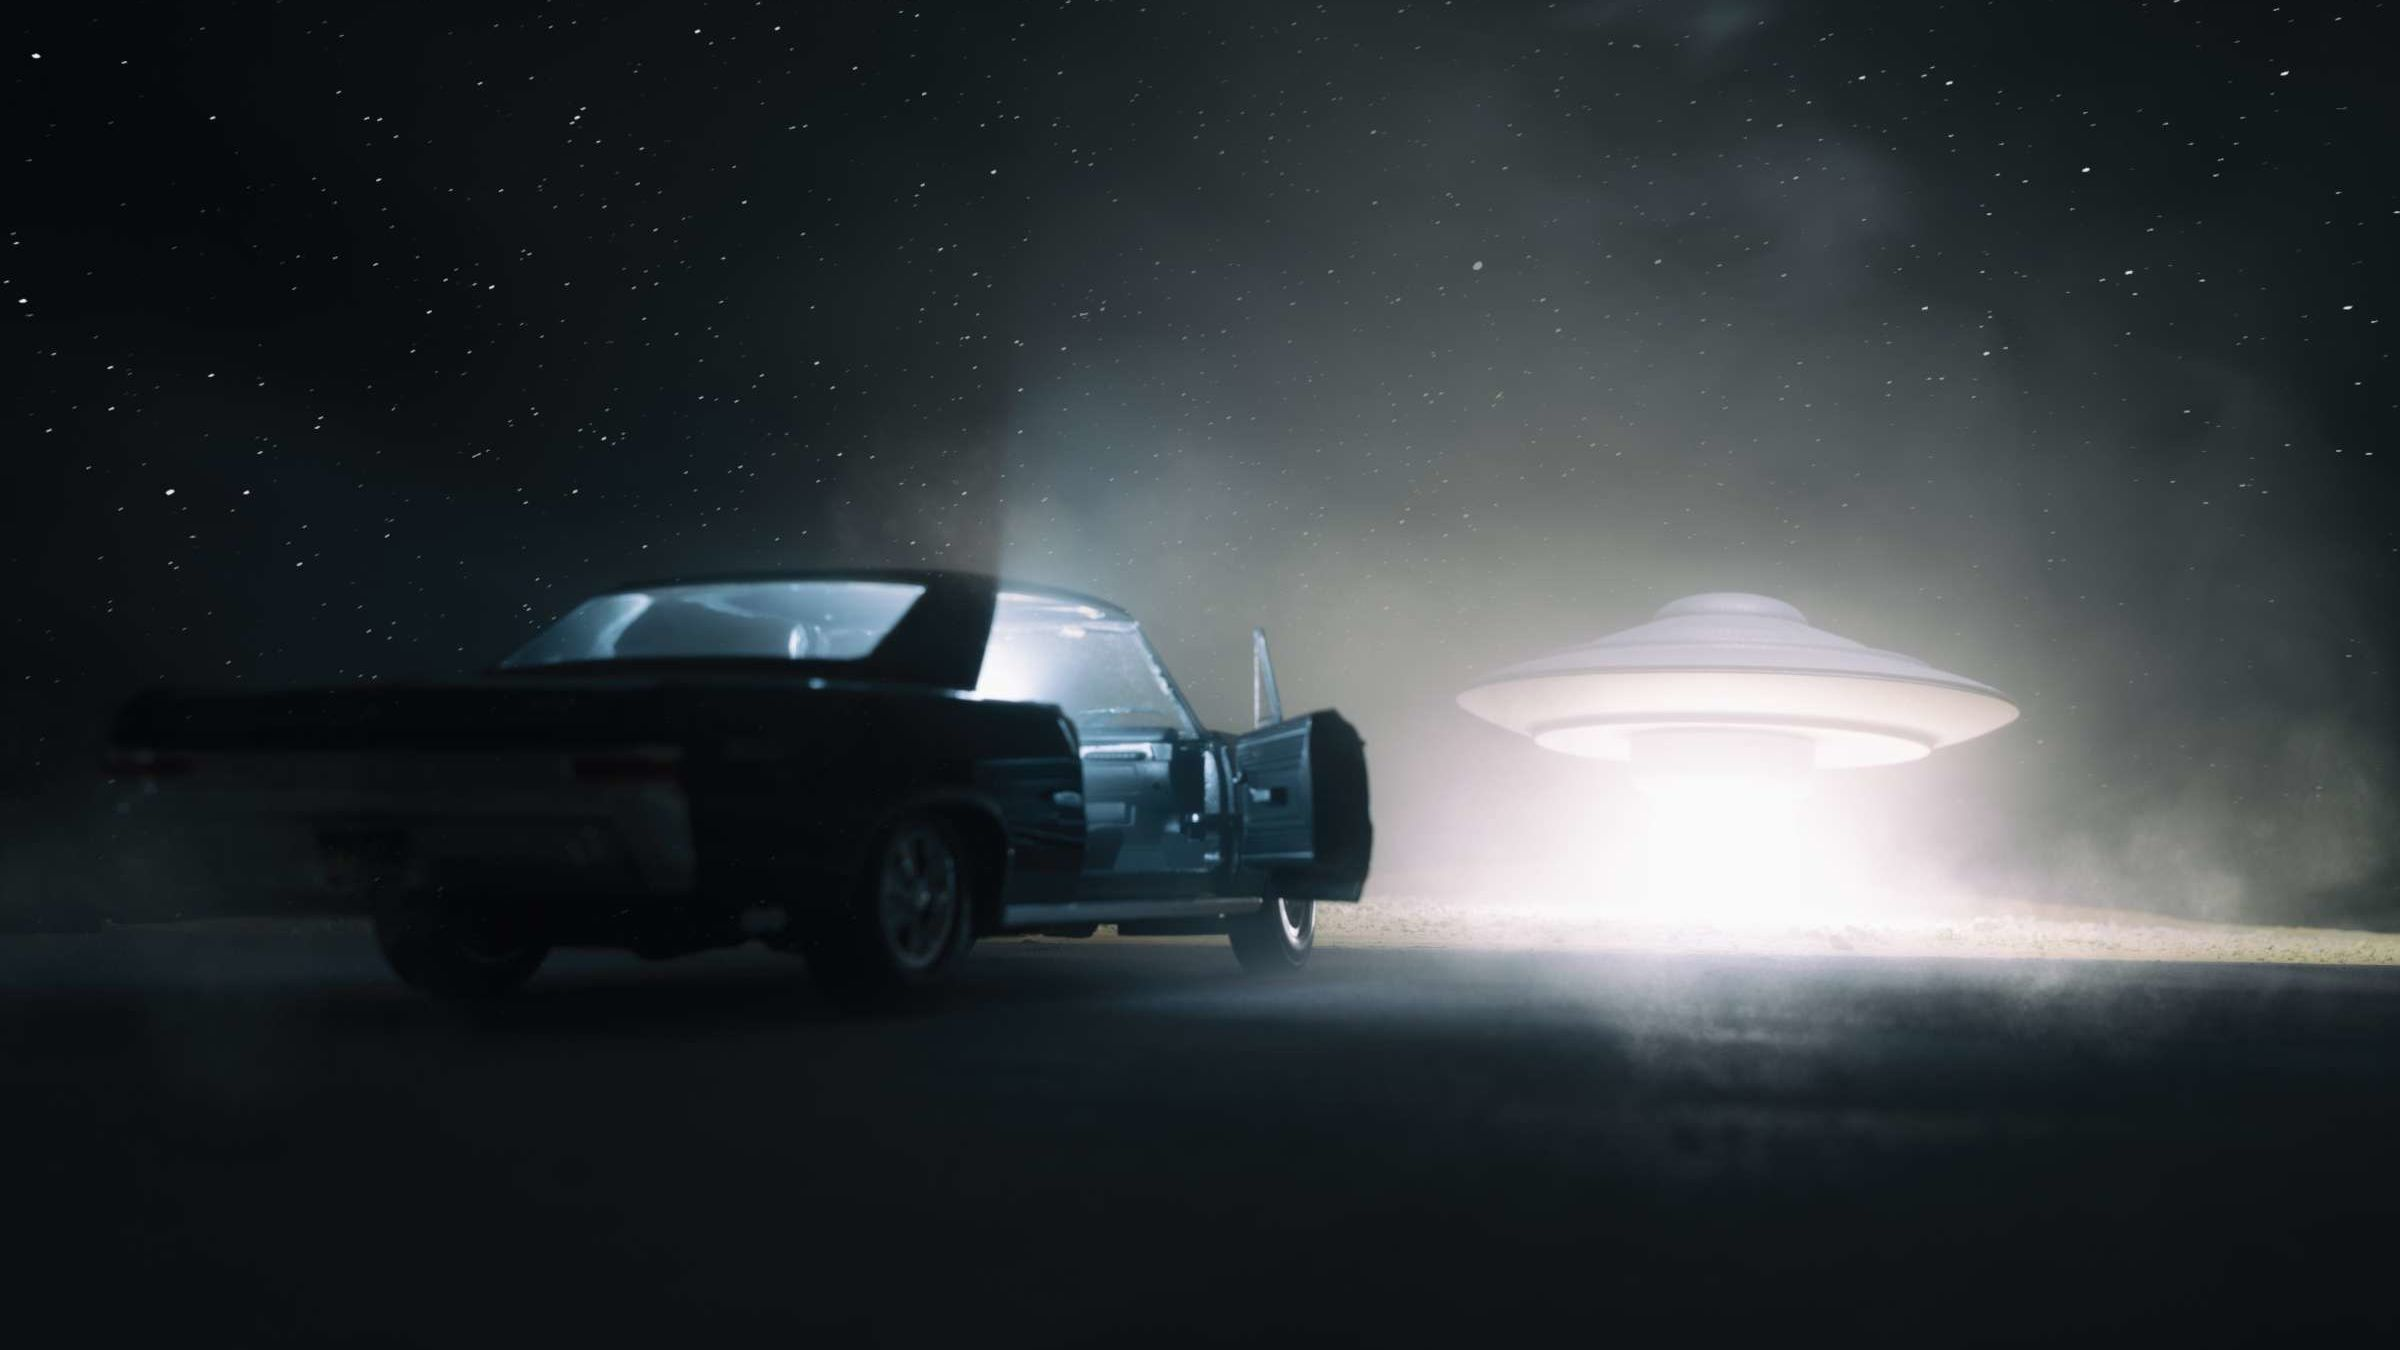 11 Strange Stories From the National UFO Reporting Center